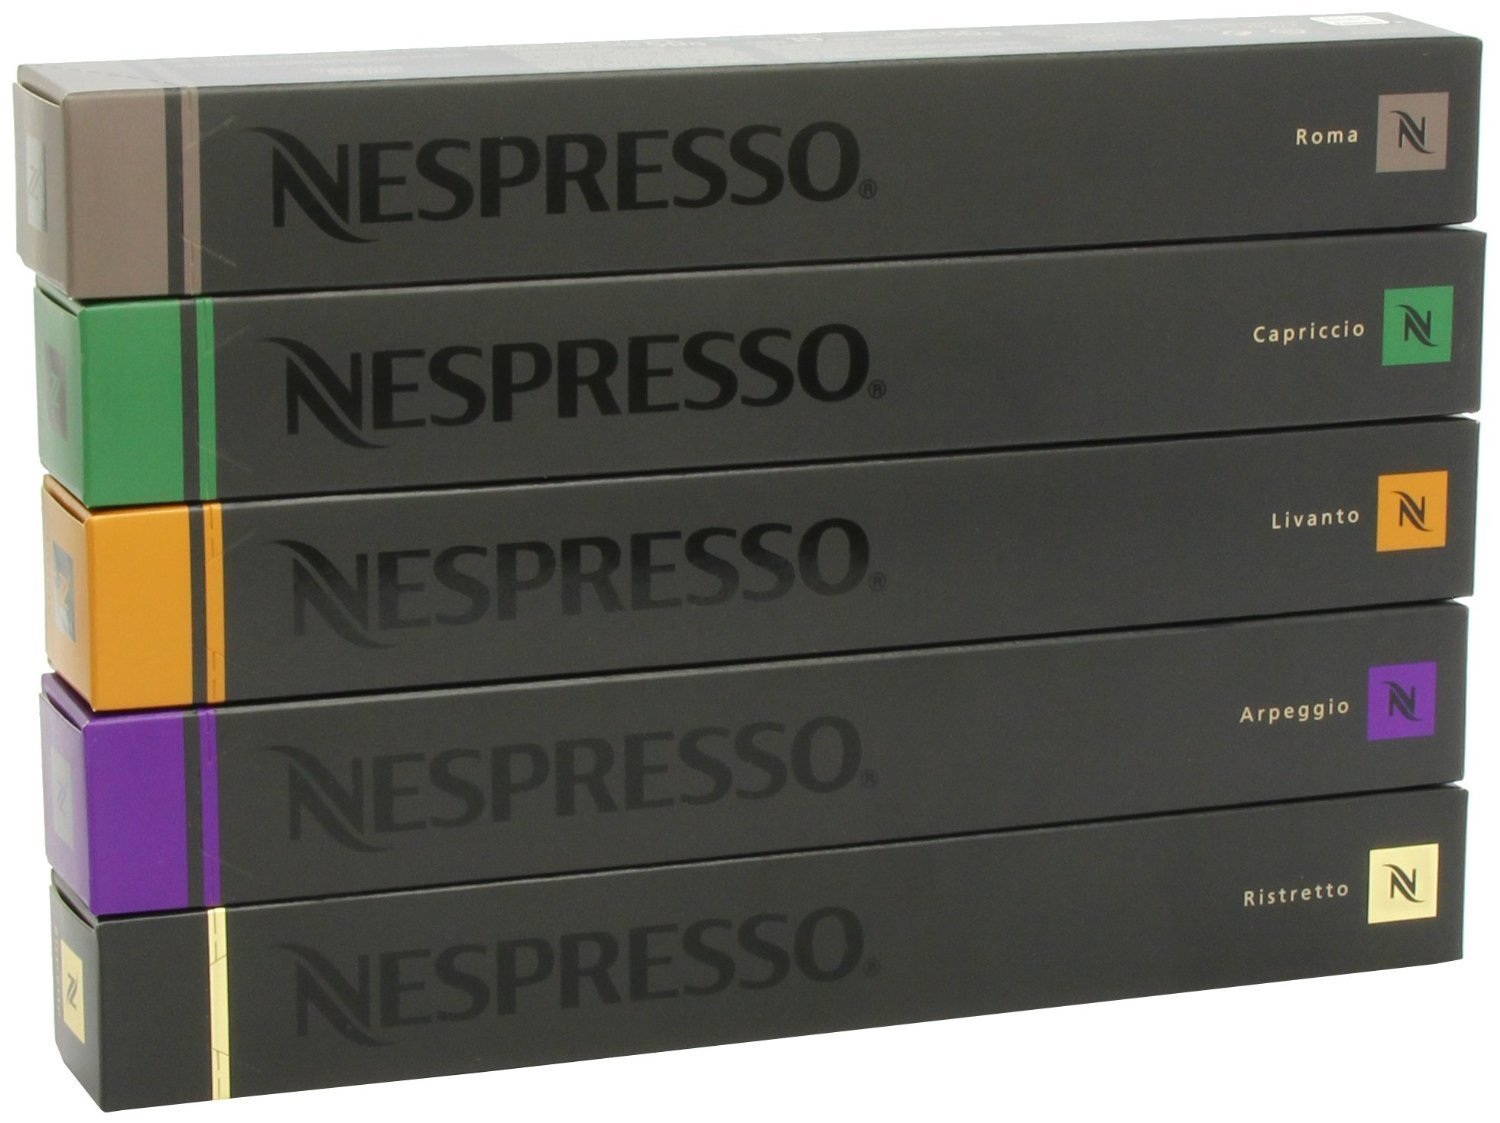 capsules nespresso pro pas cher 50 capsules nespresso pro caf cors sonopourtous gamme complete. Black Bedroom Furniture Sets. Home Design Ideas